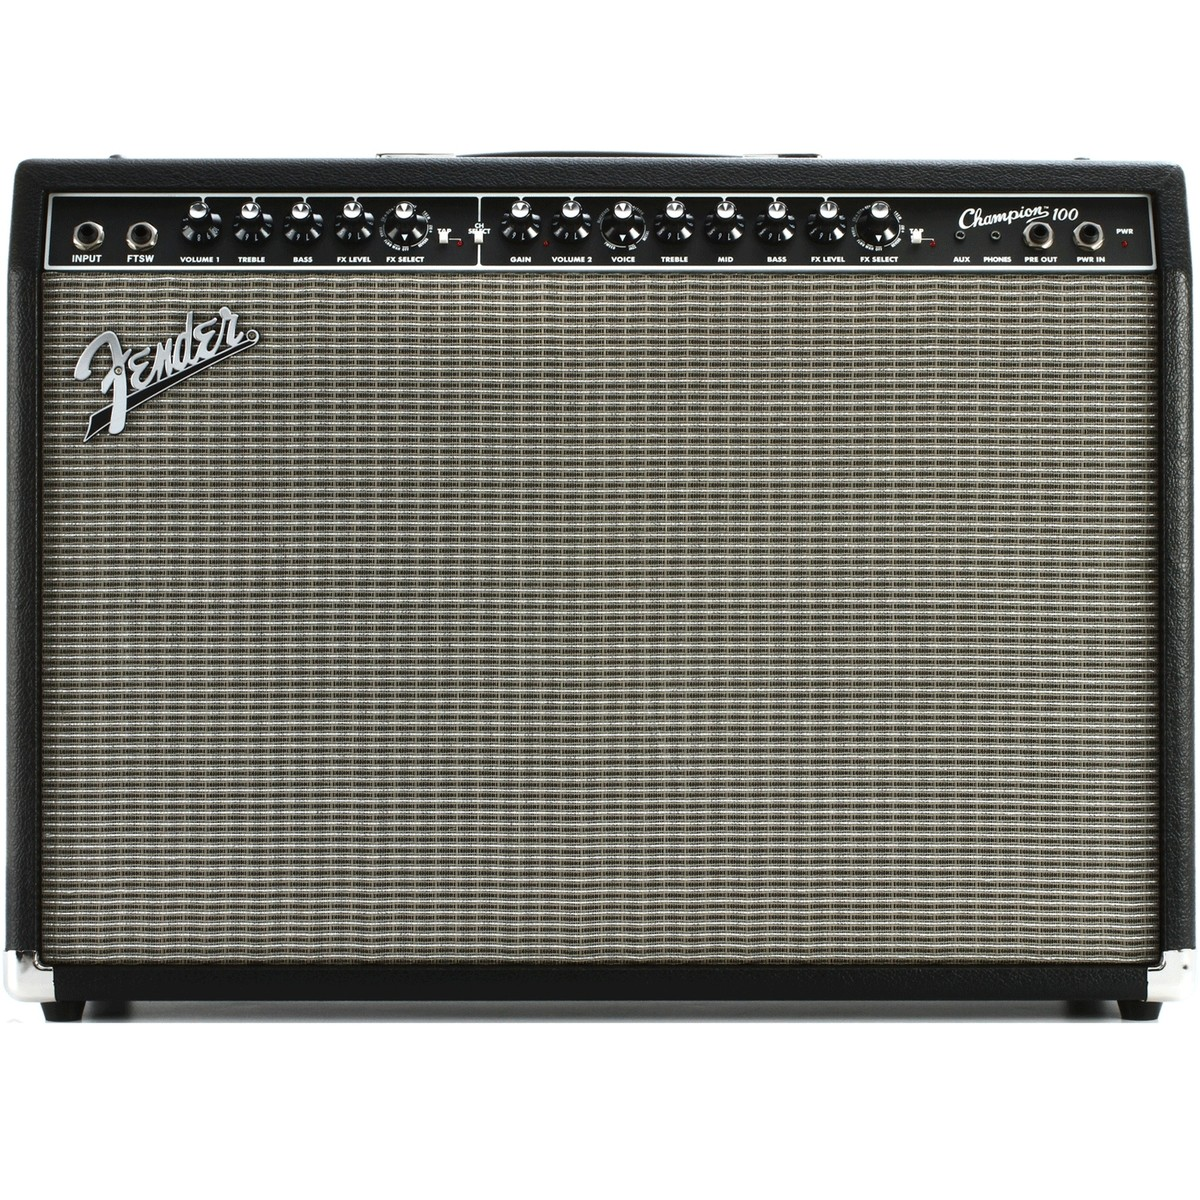 Fender Champion 100 Guitar Amplifieritar Amplifier